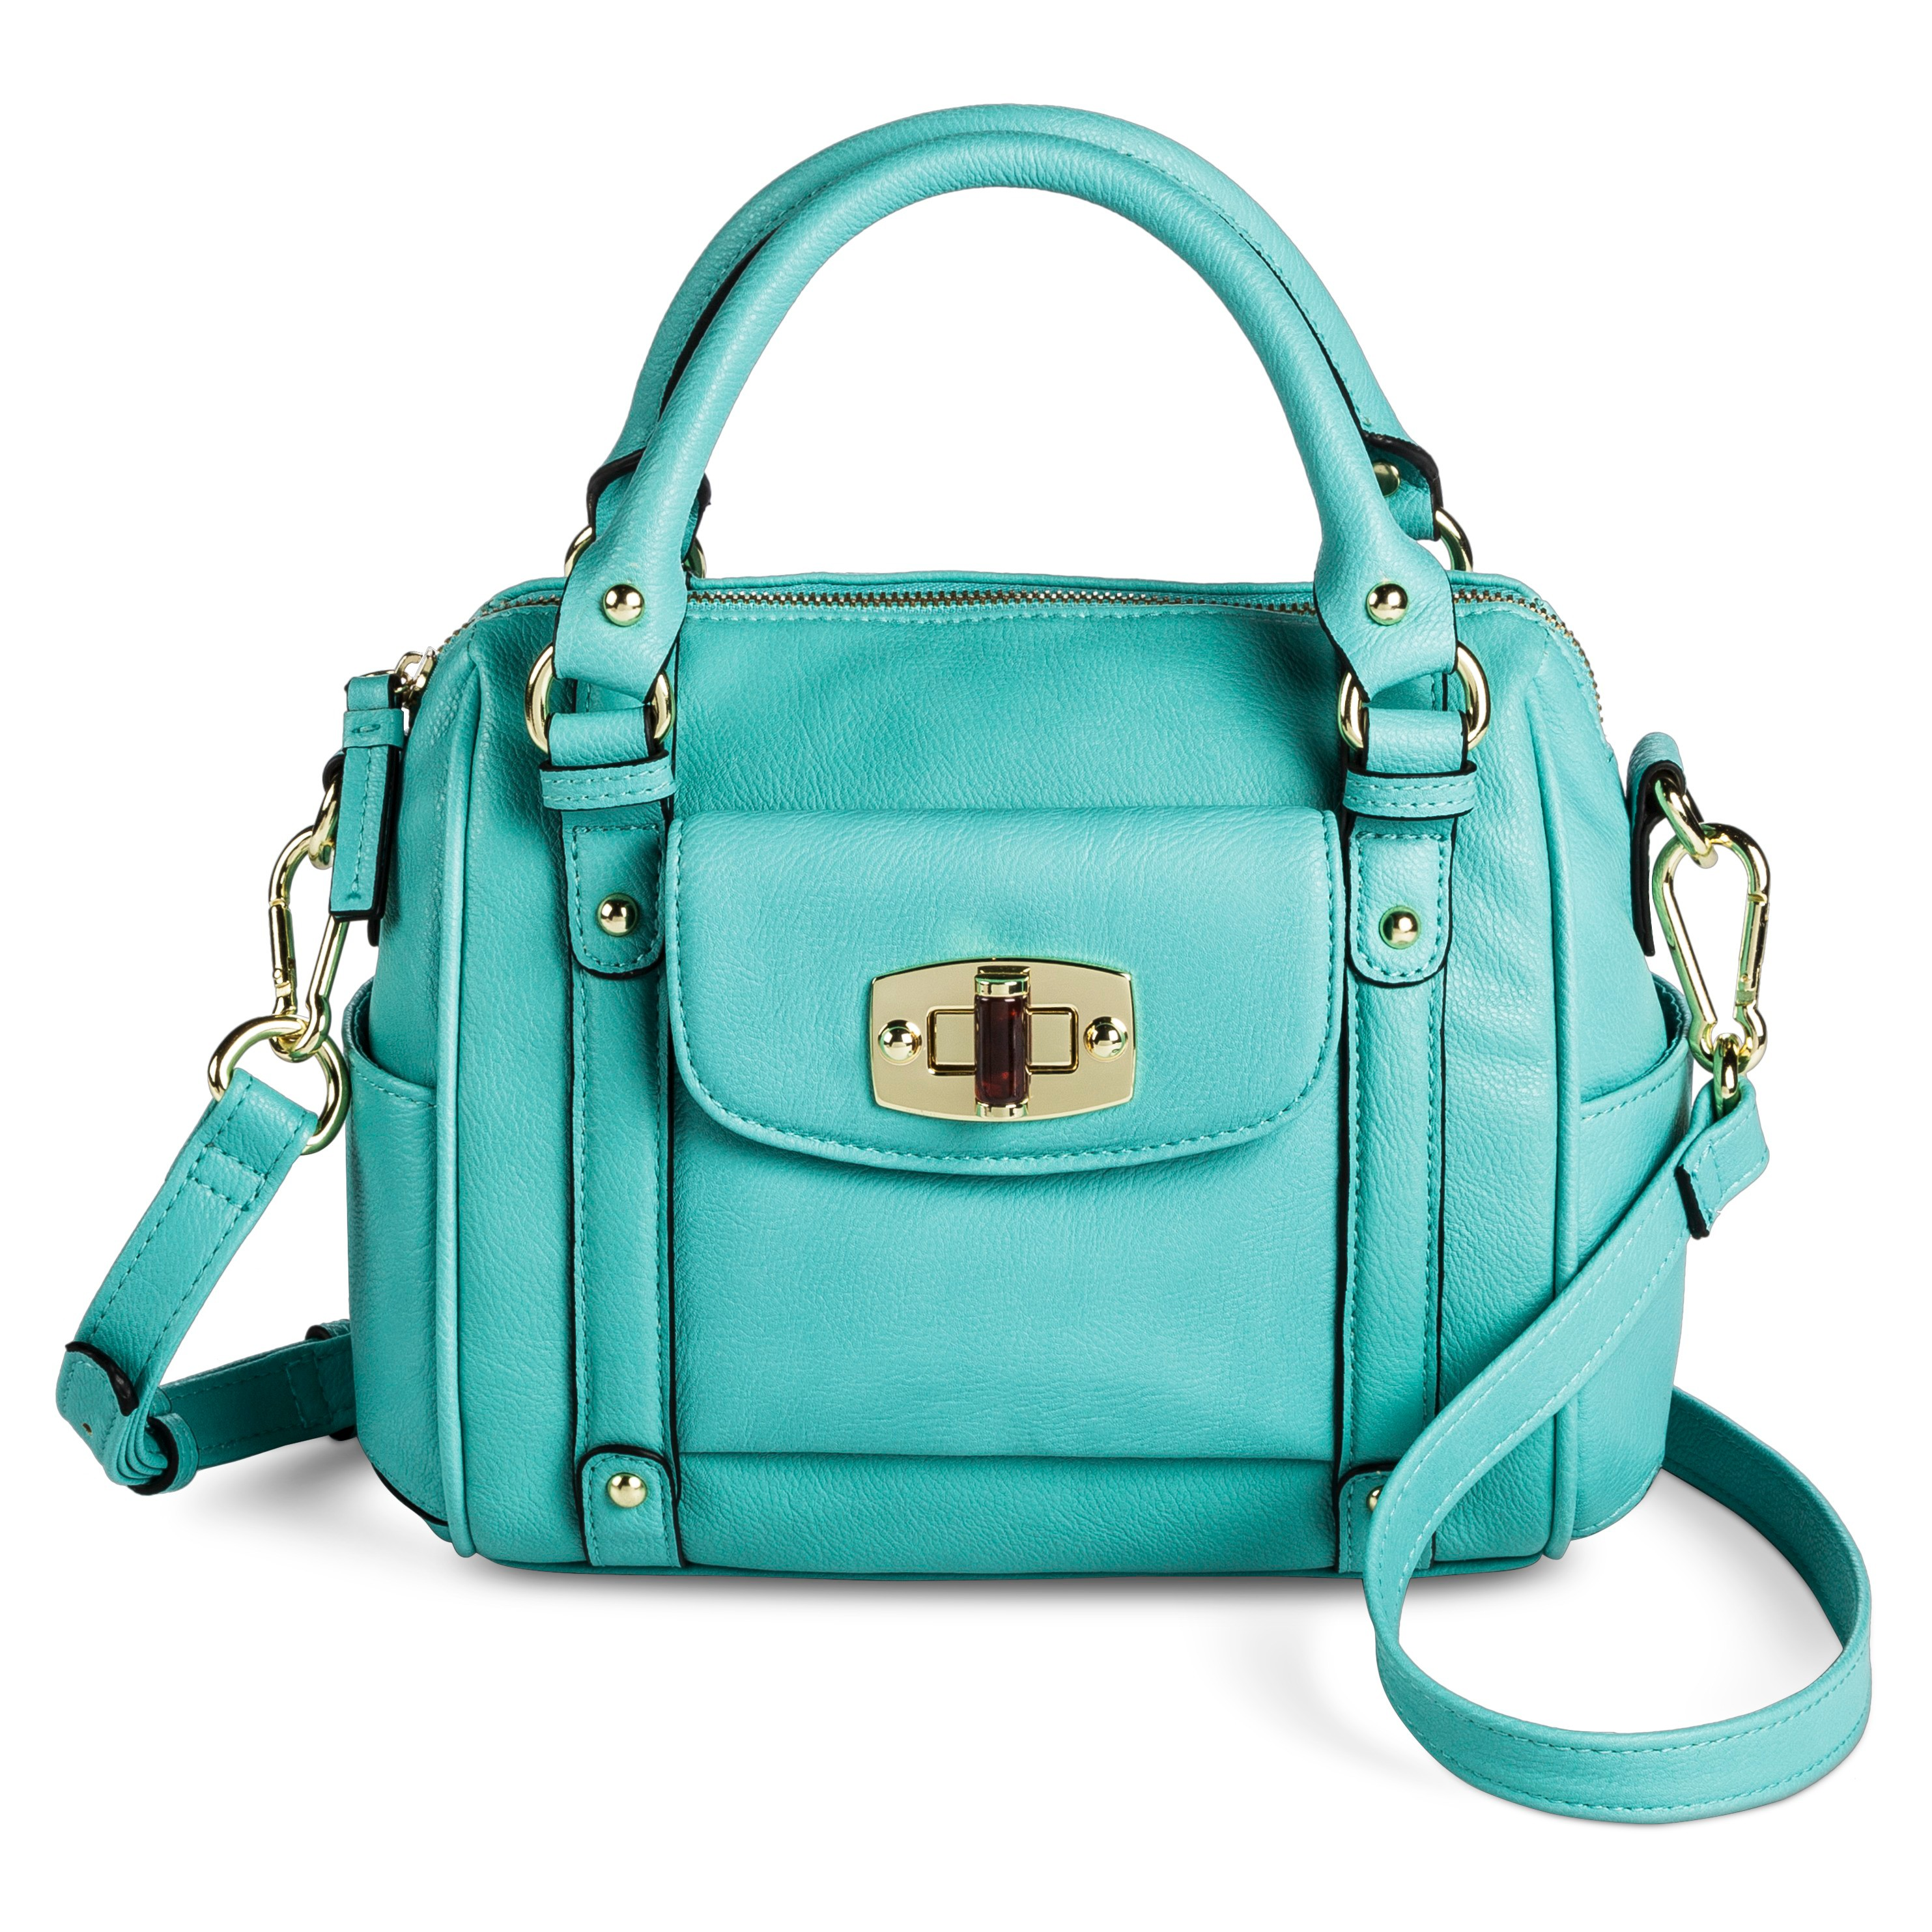 Handbags | Everything Turquoise | Page 3